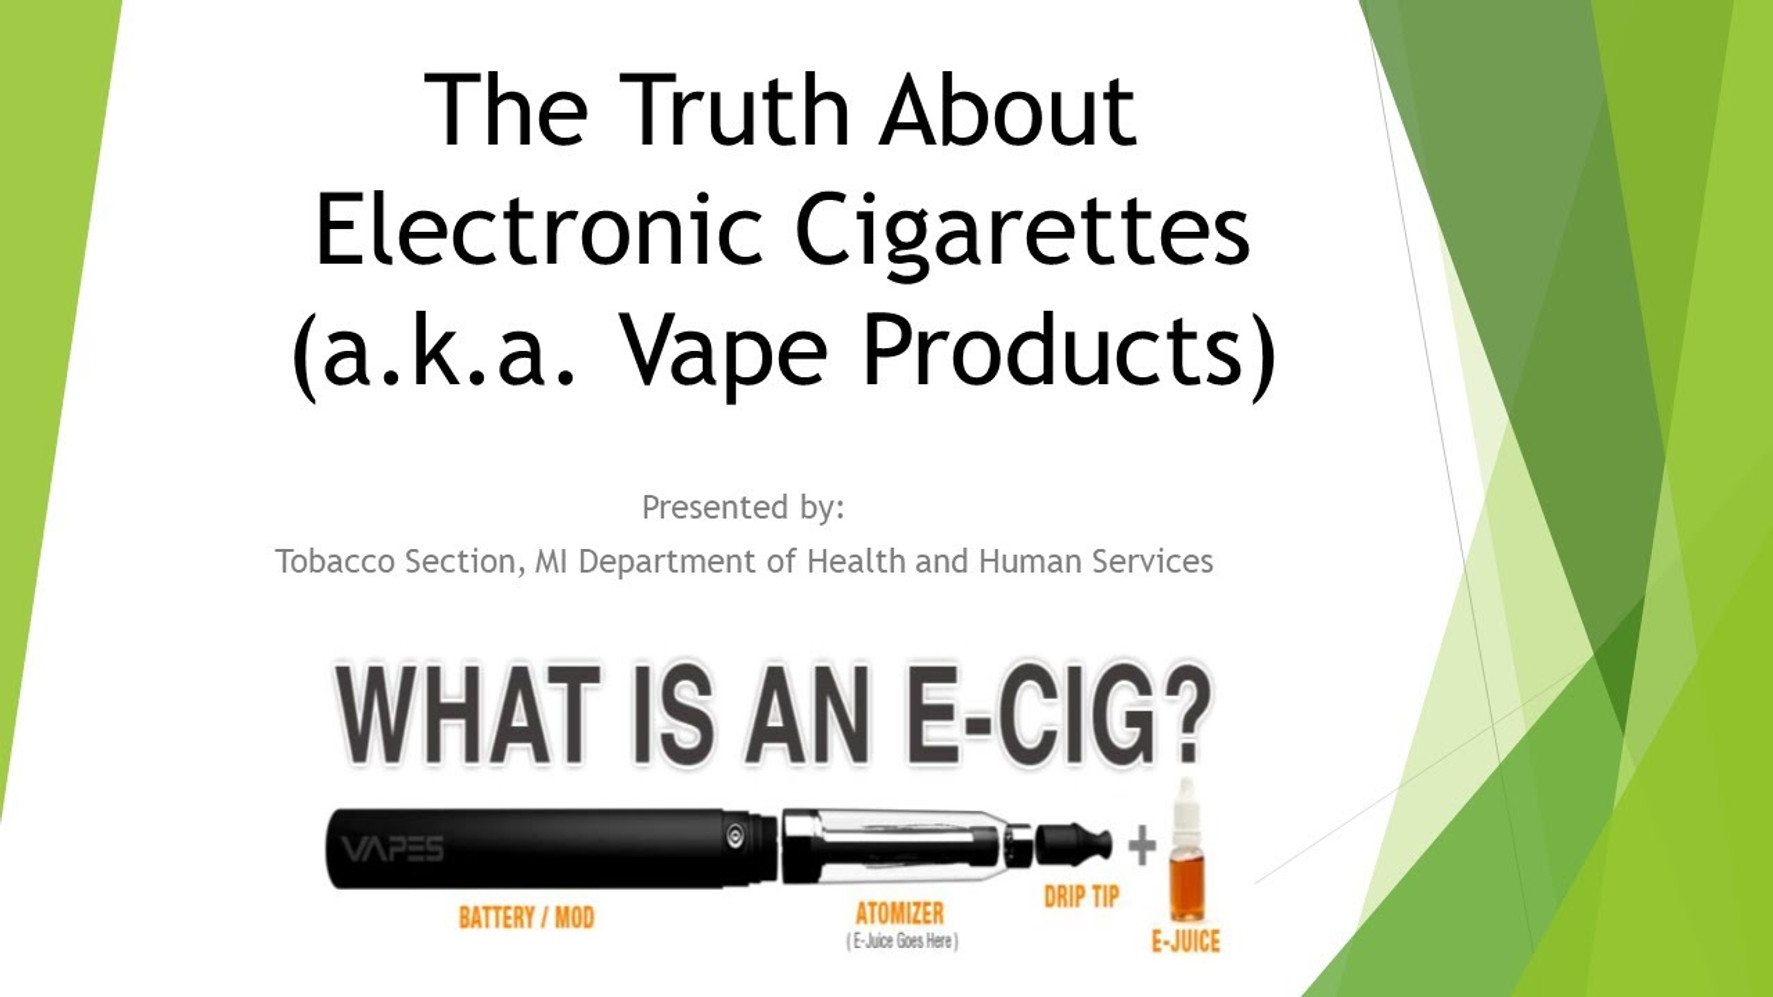 The Truth About Electronic Cigarettes (a.k.a. Vape Products)